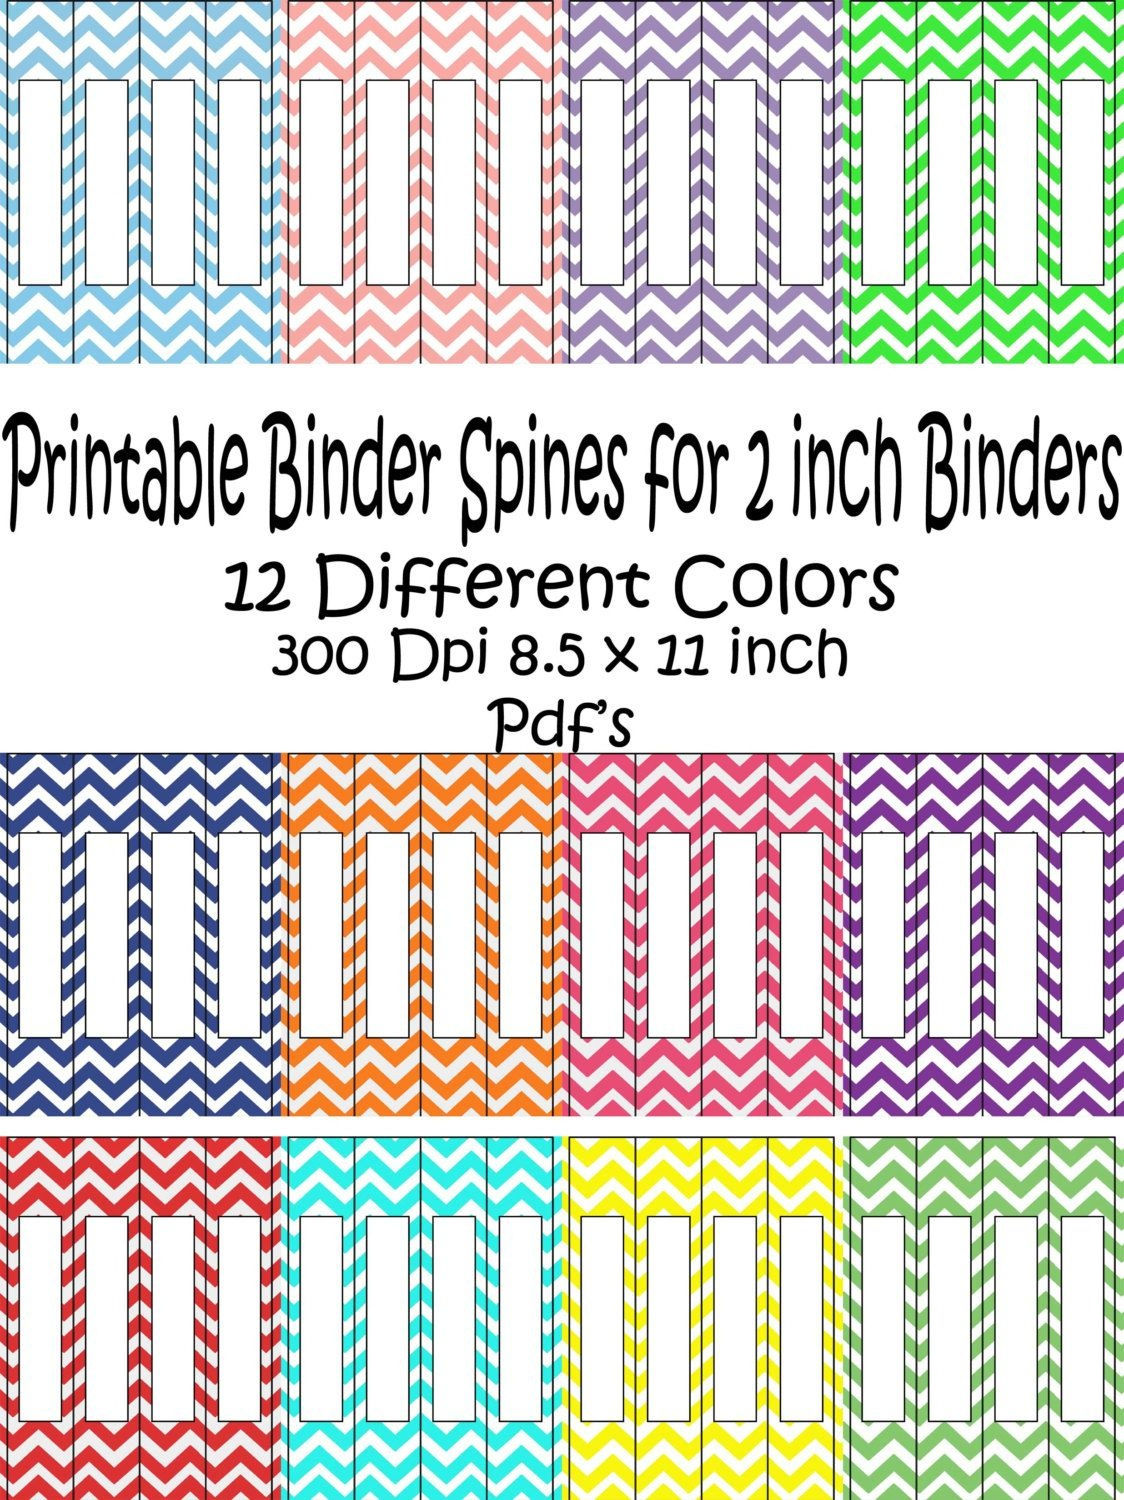 Printable Binder Spine Pack Size 2 Inch-12 Different Colors In - Free Editable Printable Binder Covers And Spines